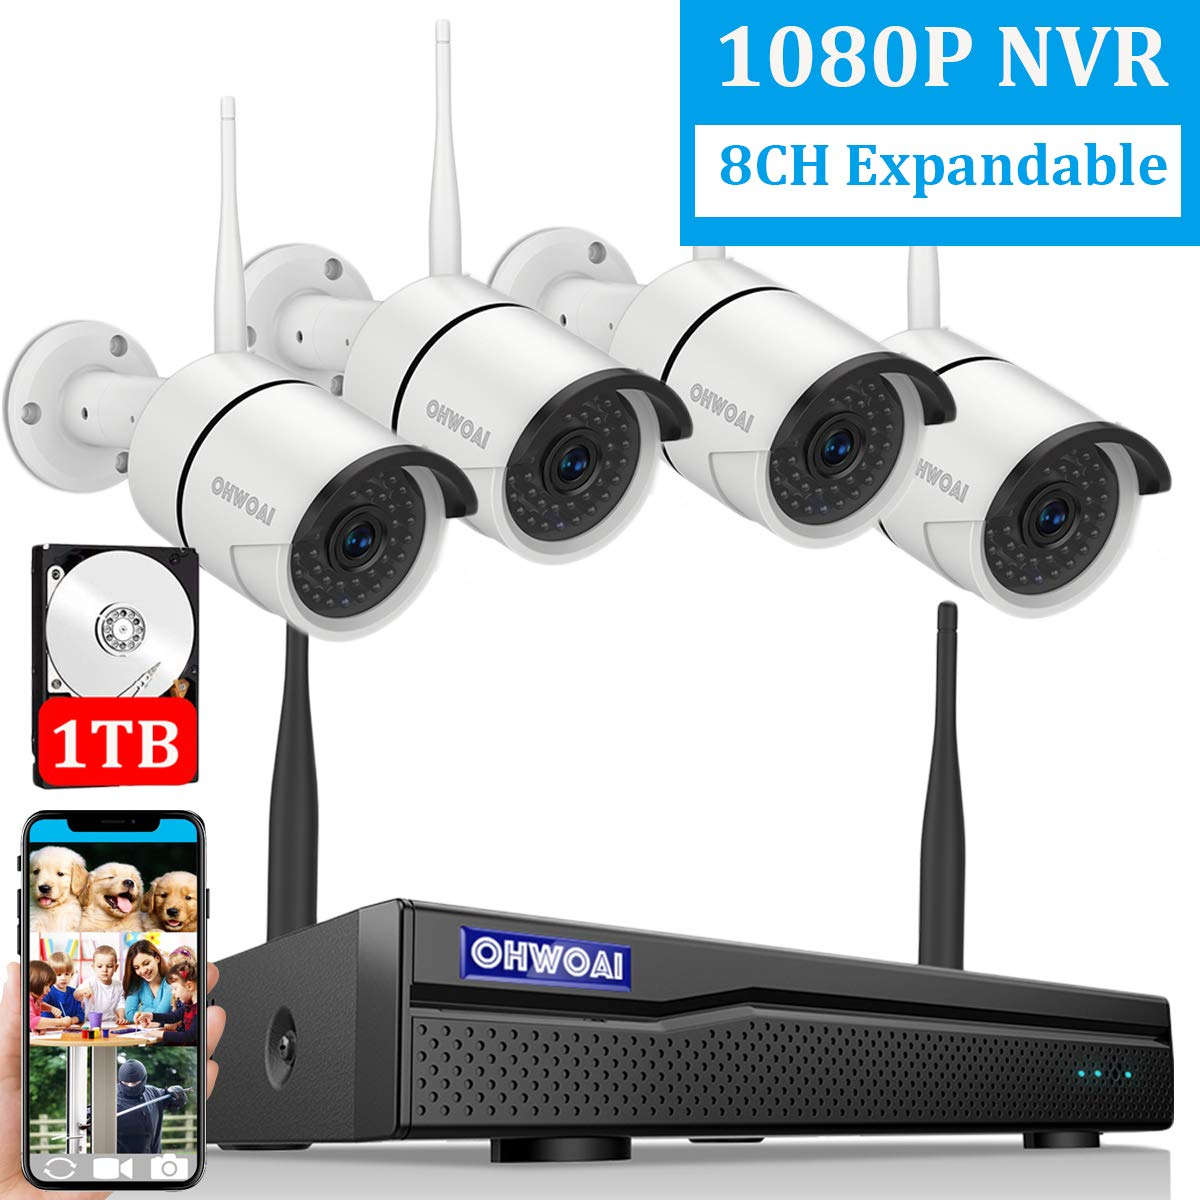 【2019 New 8CH Expandable】OHWOAI Security Camera System Wireless, 8CH 1080P NVR, 4Pcs 720P HD Outdoor/ Indoor IP Cameras,Home CCTV Surveillance System(1TB Hard Drive)Waterproof,Remote Access,Plug&Play